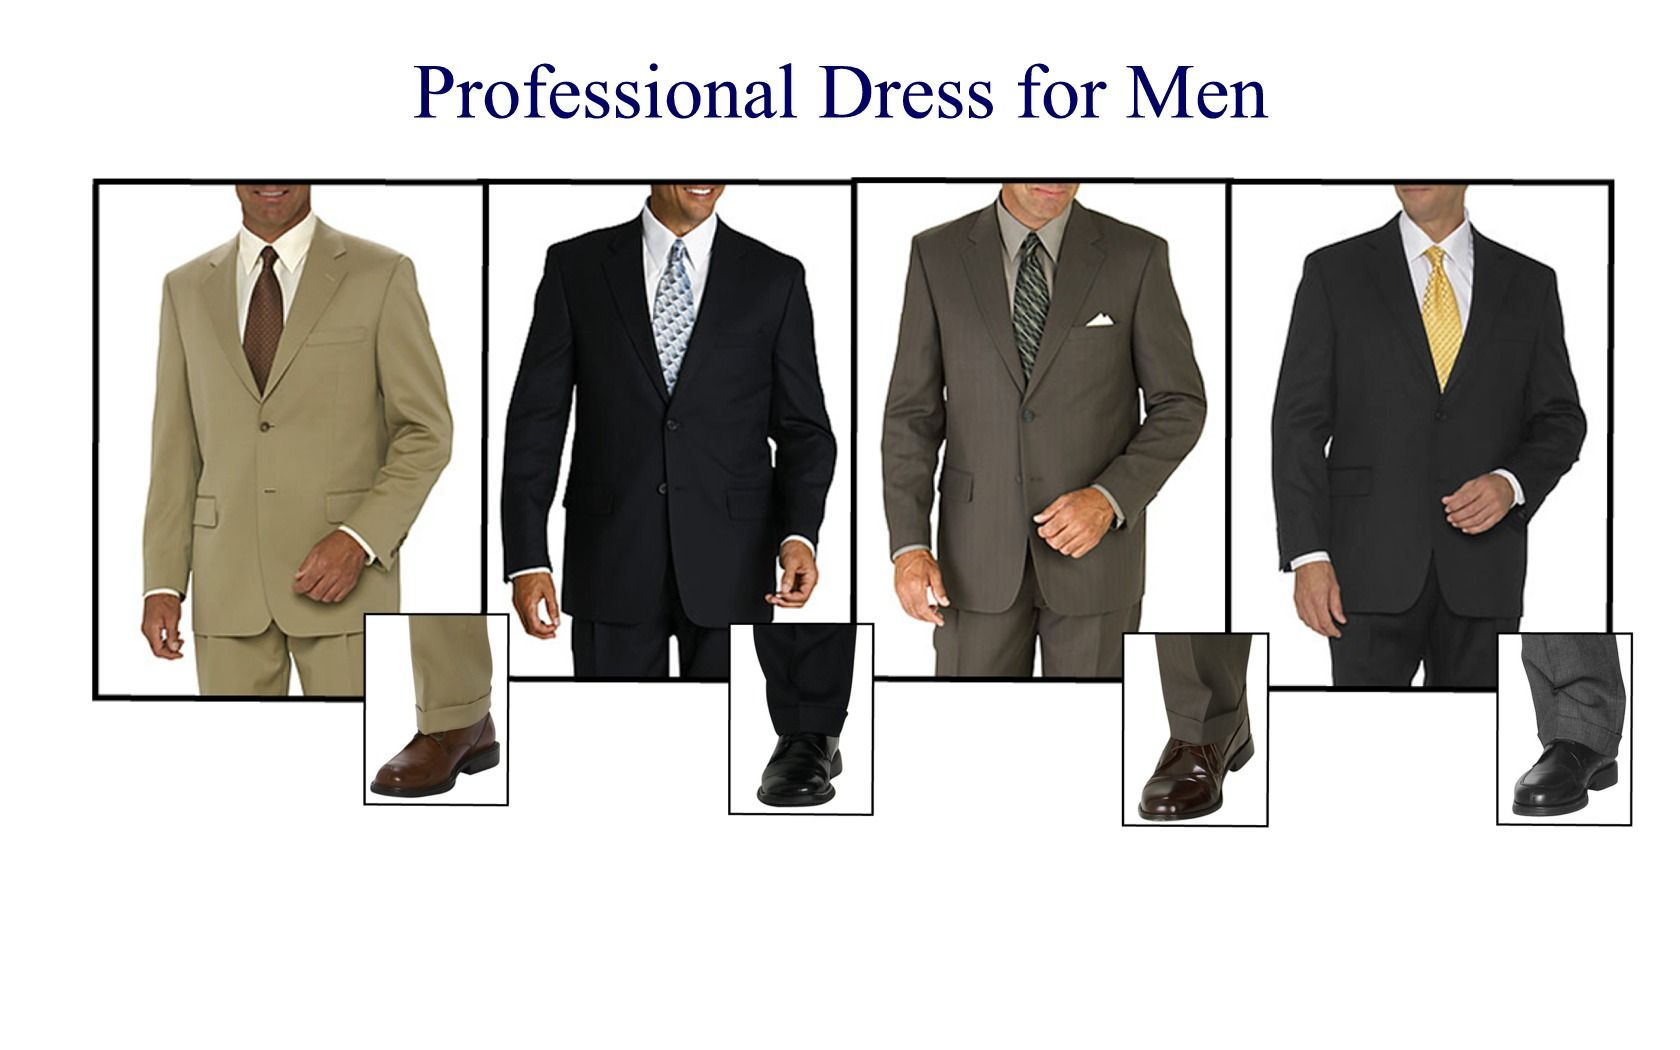 Dress to please your potential employer. Second impressions prove ...